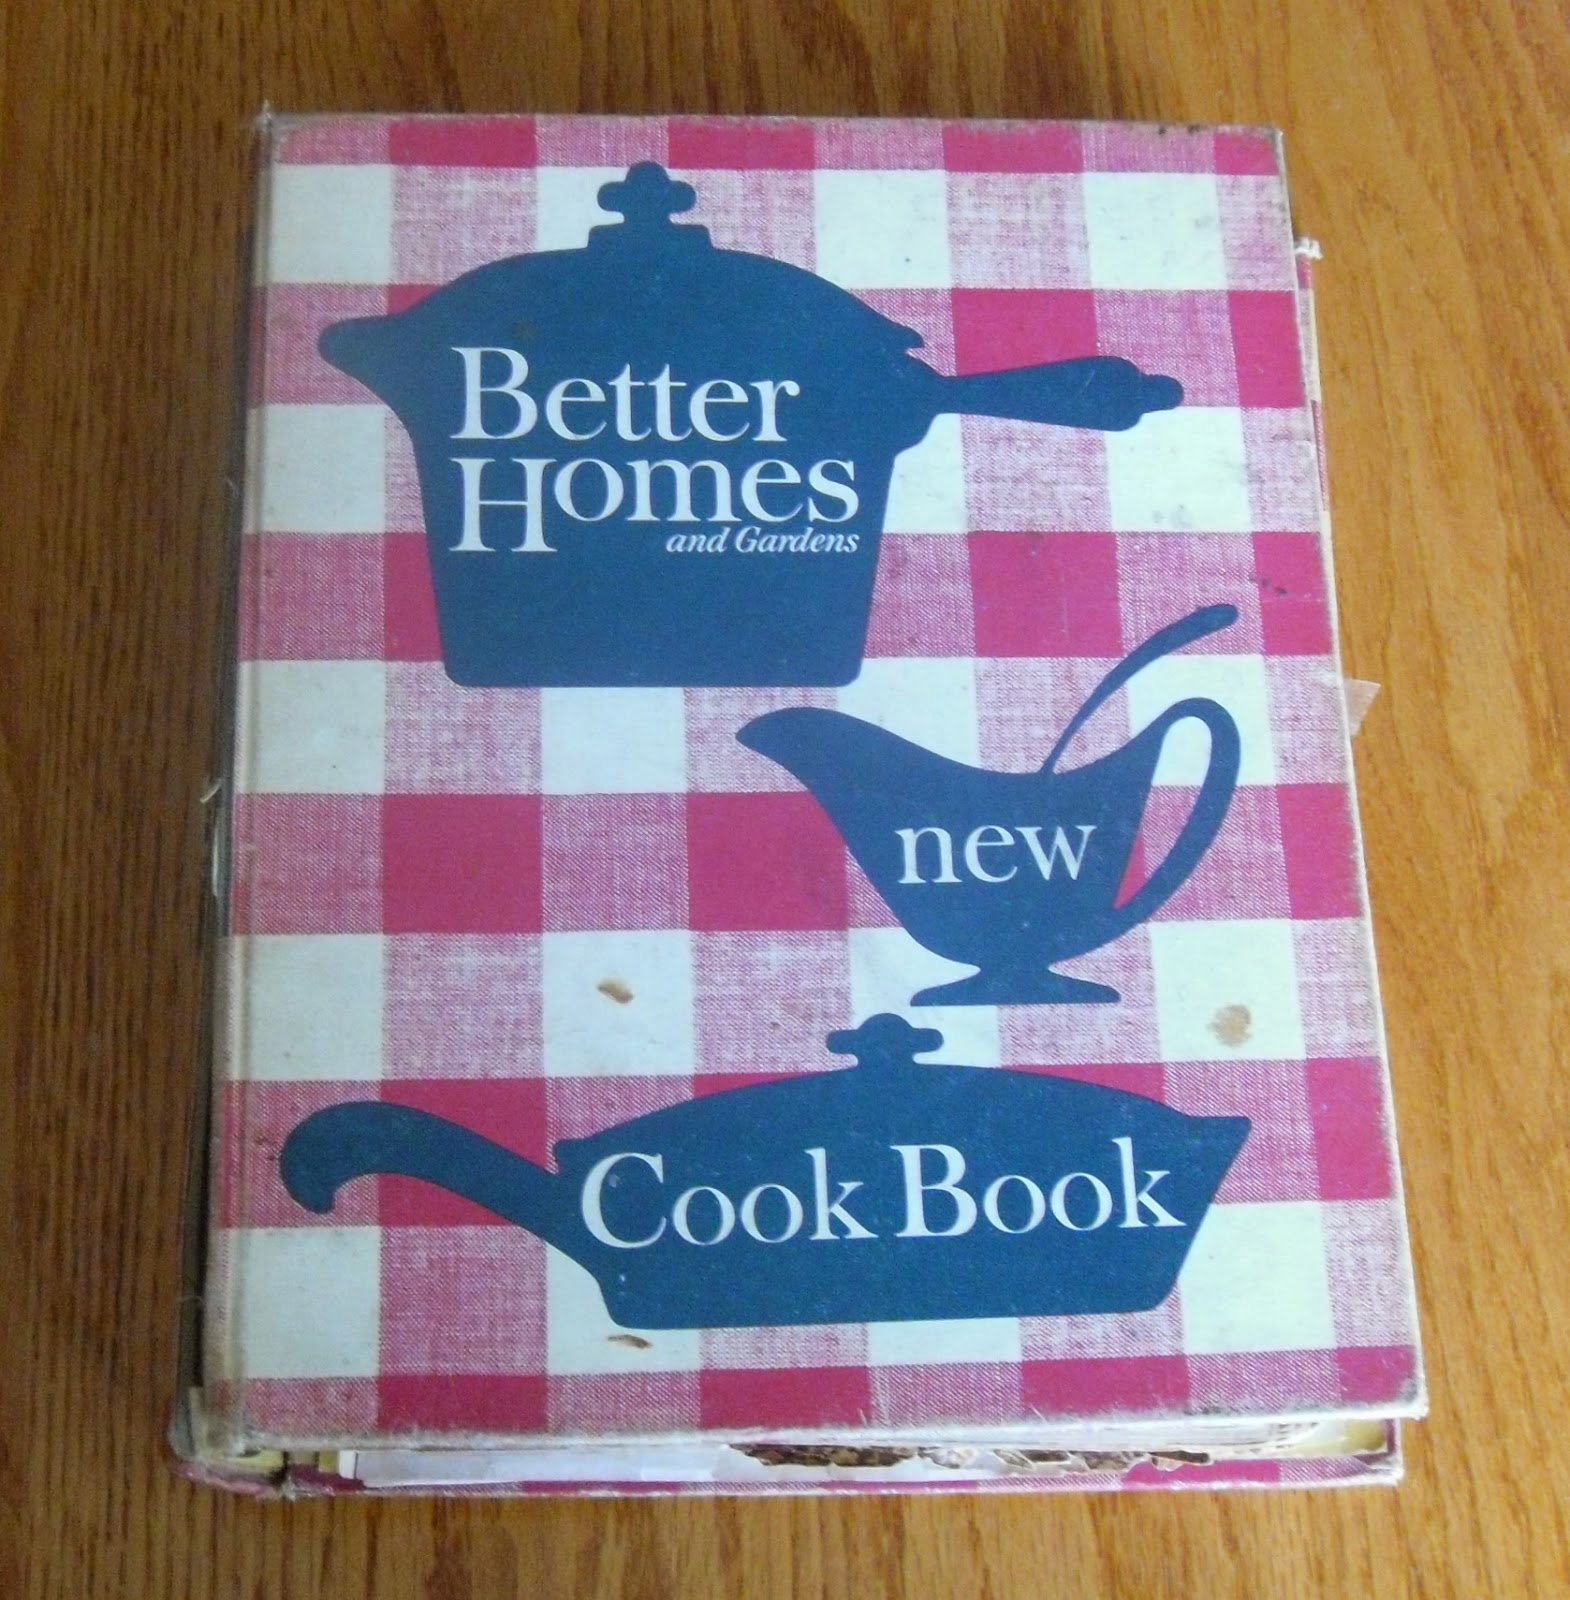 Better homes cookbook